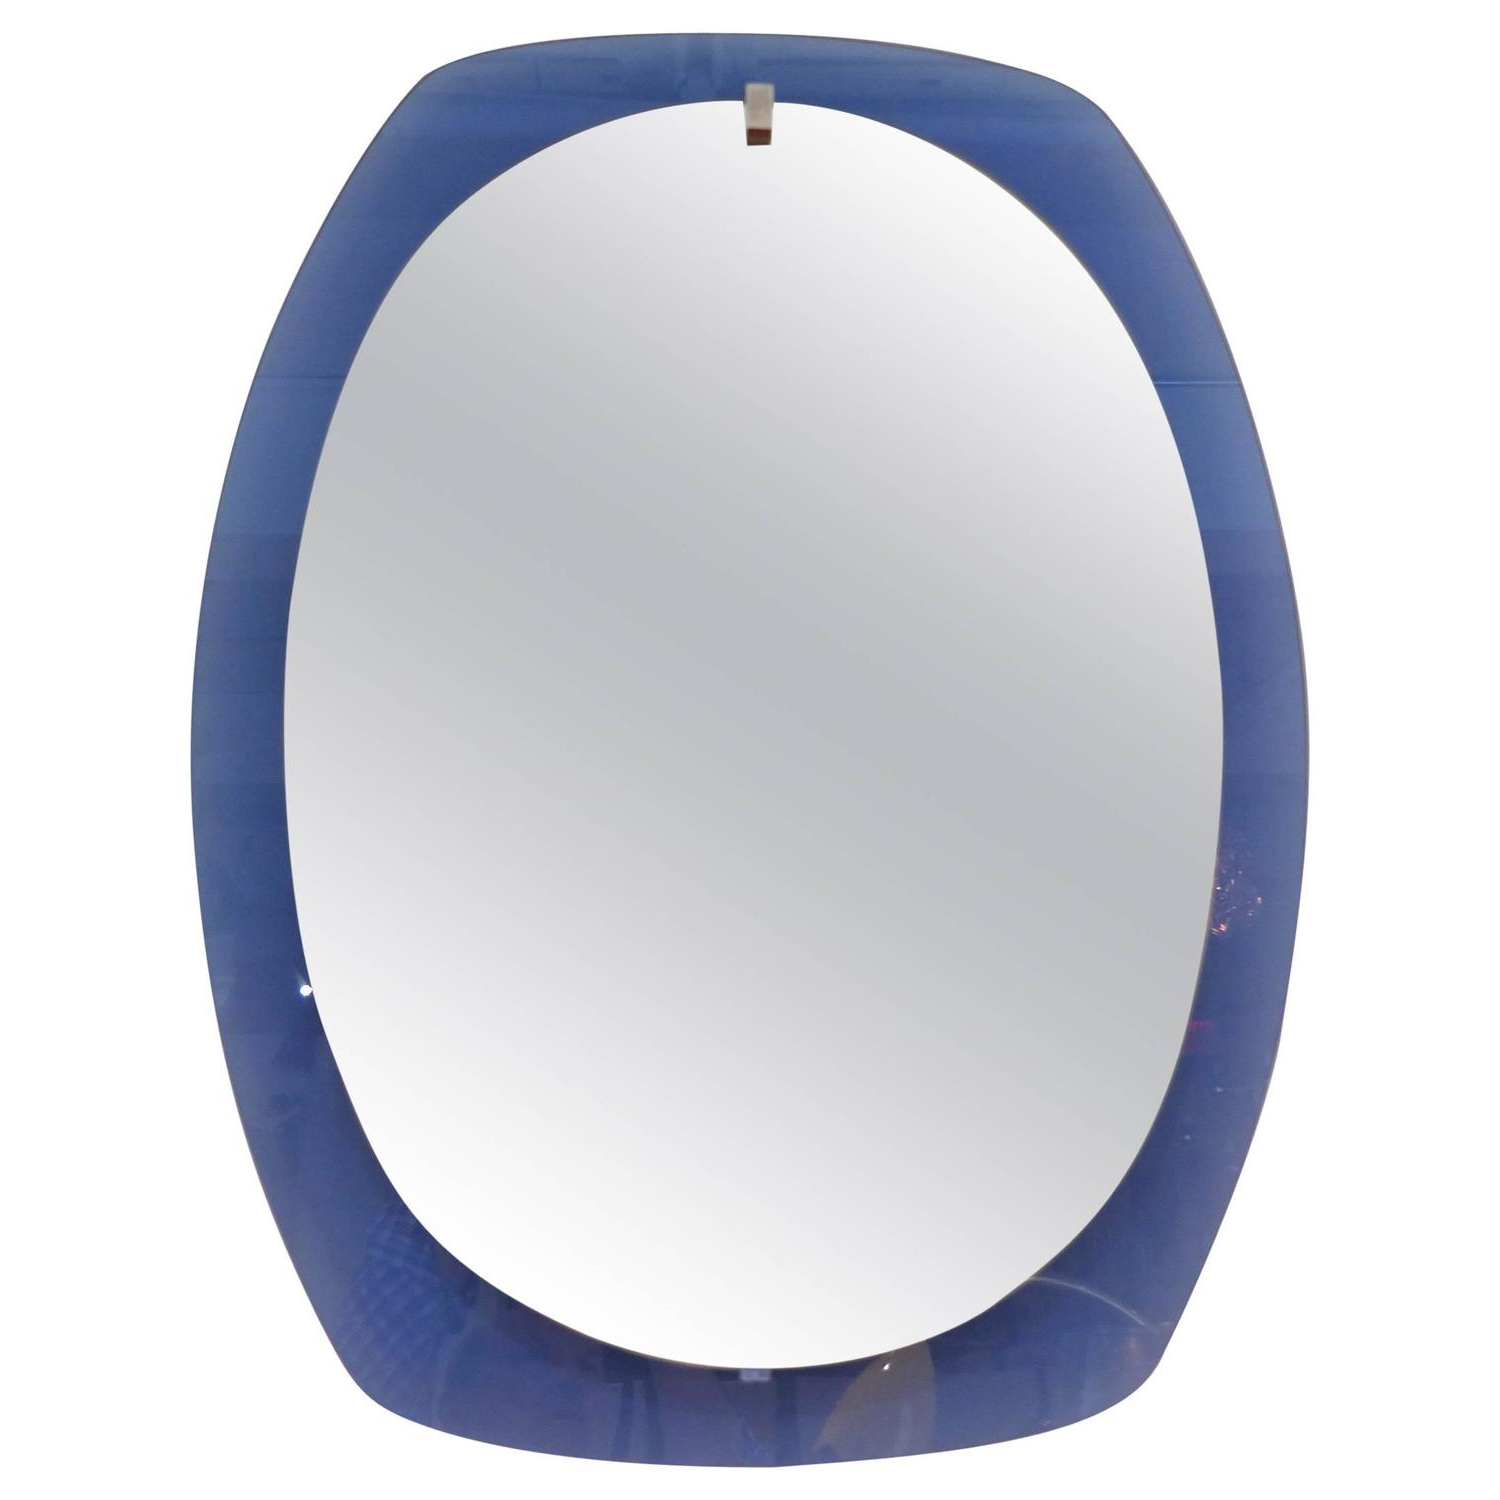 Well Known Blue Wall Mirrors Pertaining To 1950s Italian Blue Glass Wall Mirrorveca (View 8 of 20)